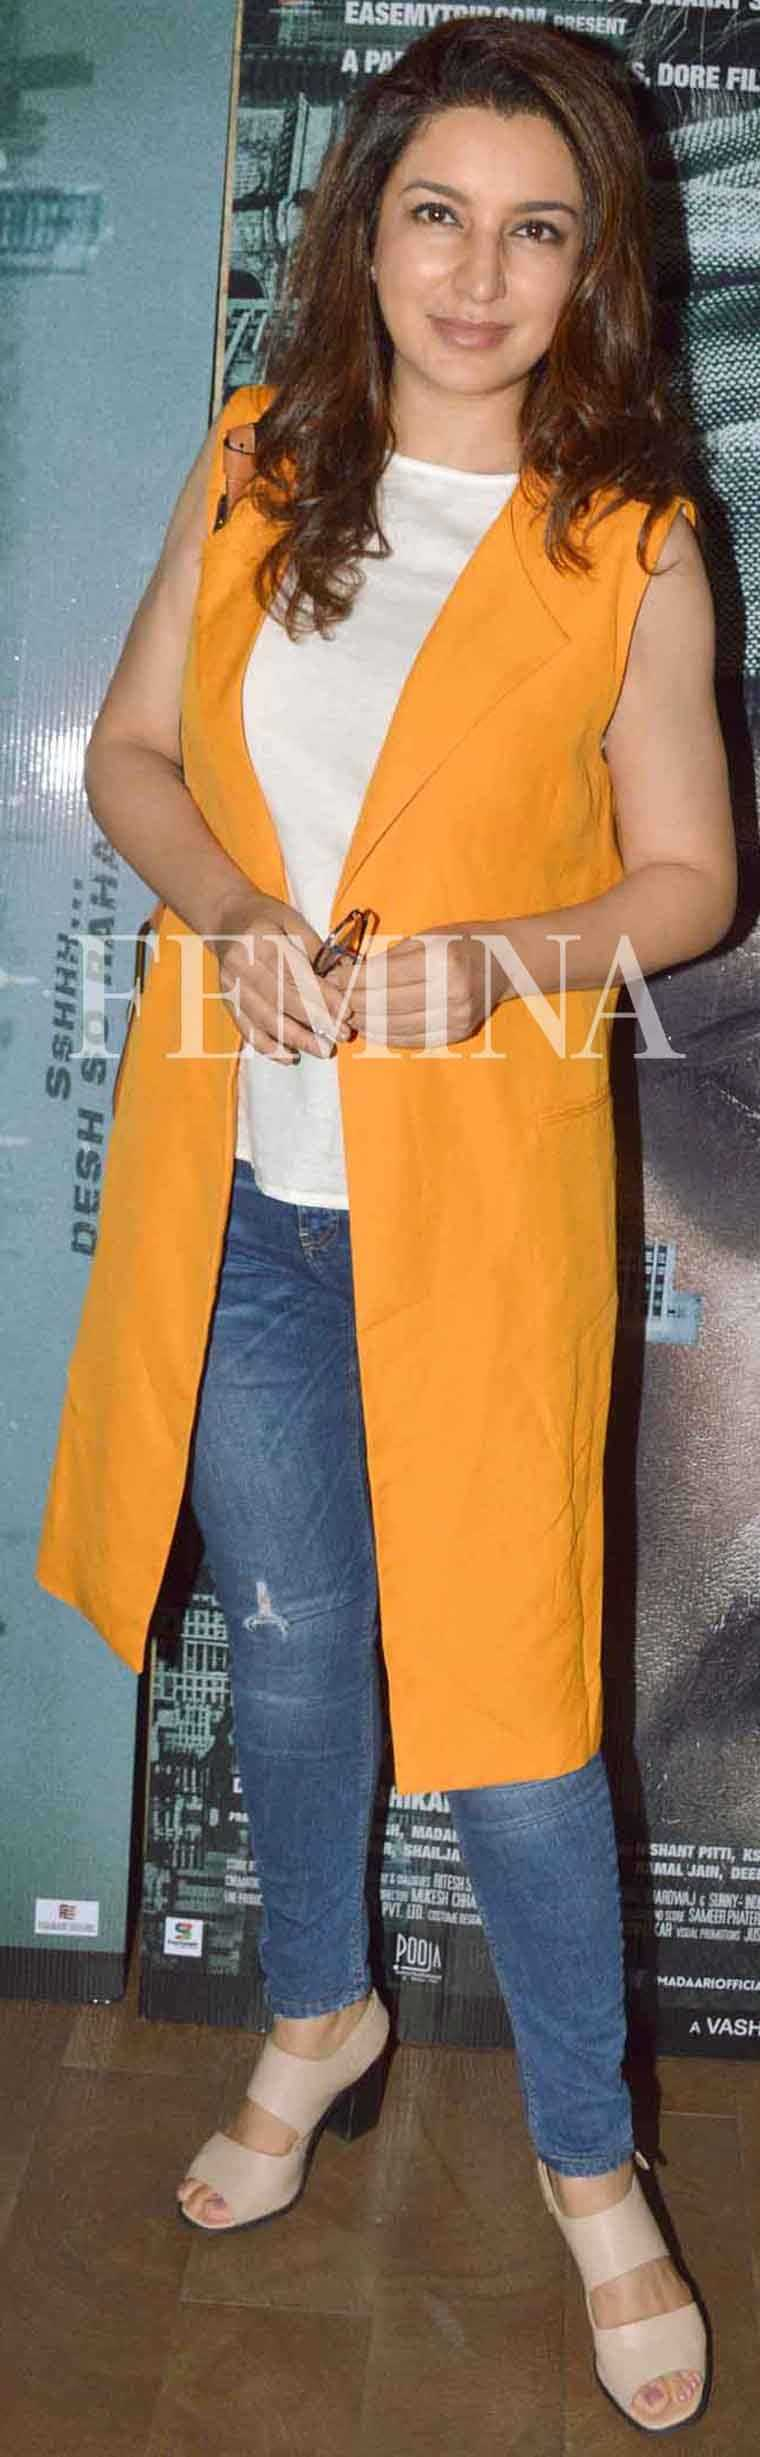 Tisca Chopra brightened up her basic tee and blue denims with a zingy tangerine vest from Zara. Her Chloe Hudson bag was like a cherry on the cake.